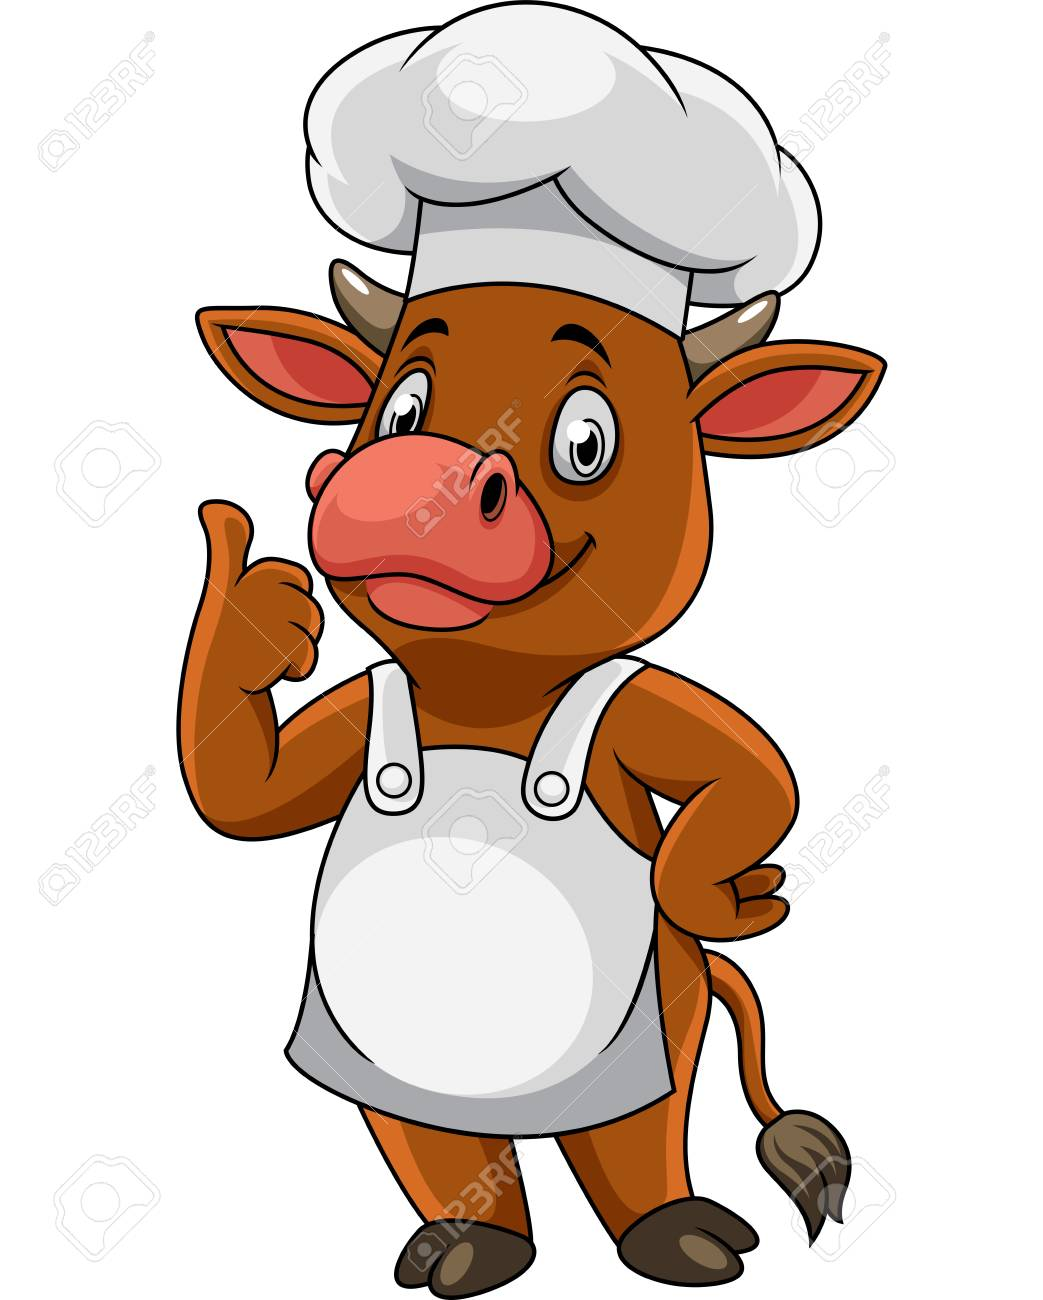 Cartoon happy cow chef giving thumbs up - 113935888